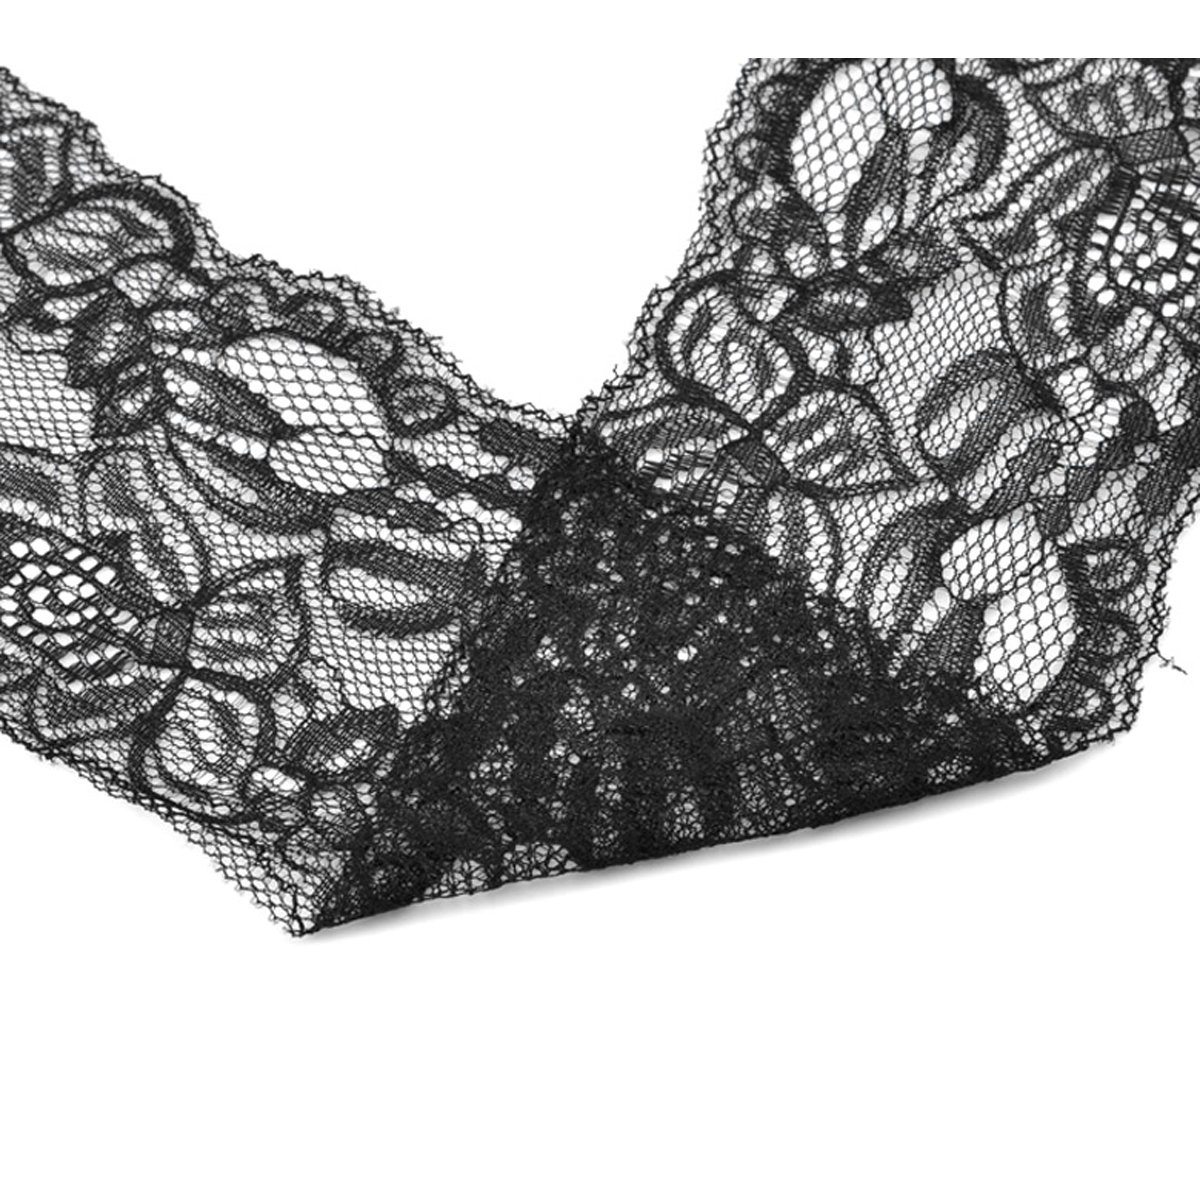 Housweety 10 Yards Black Stretch Floral Lace Edge Trim 3-3/8